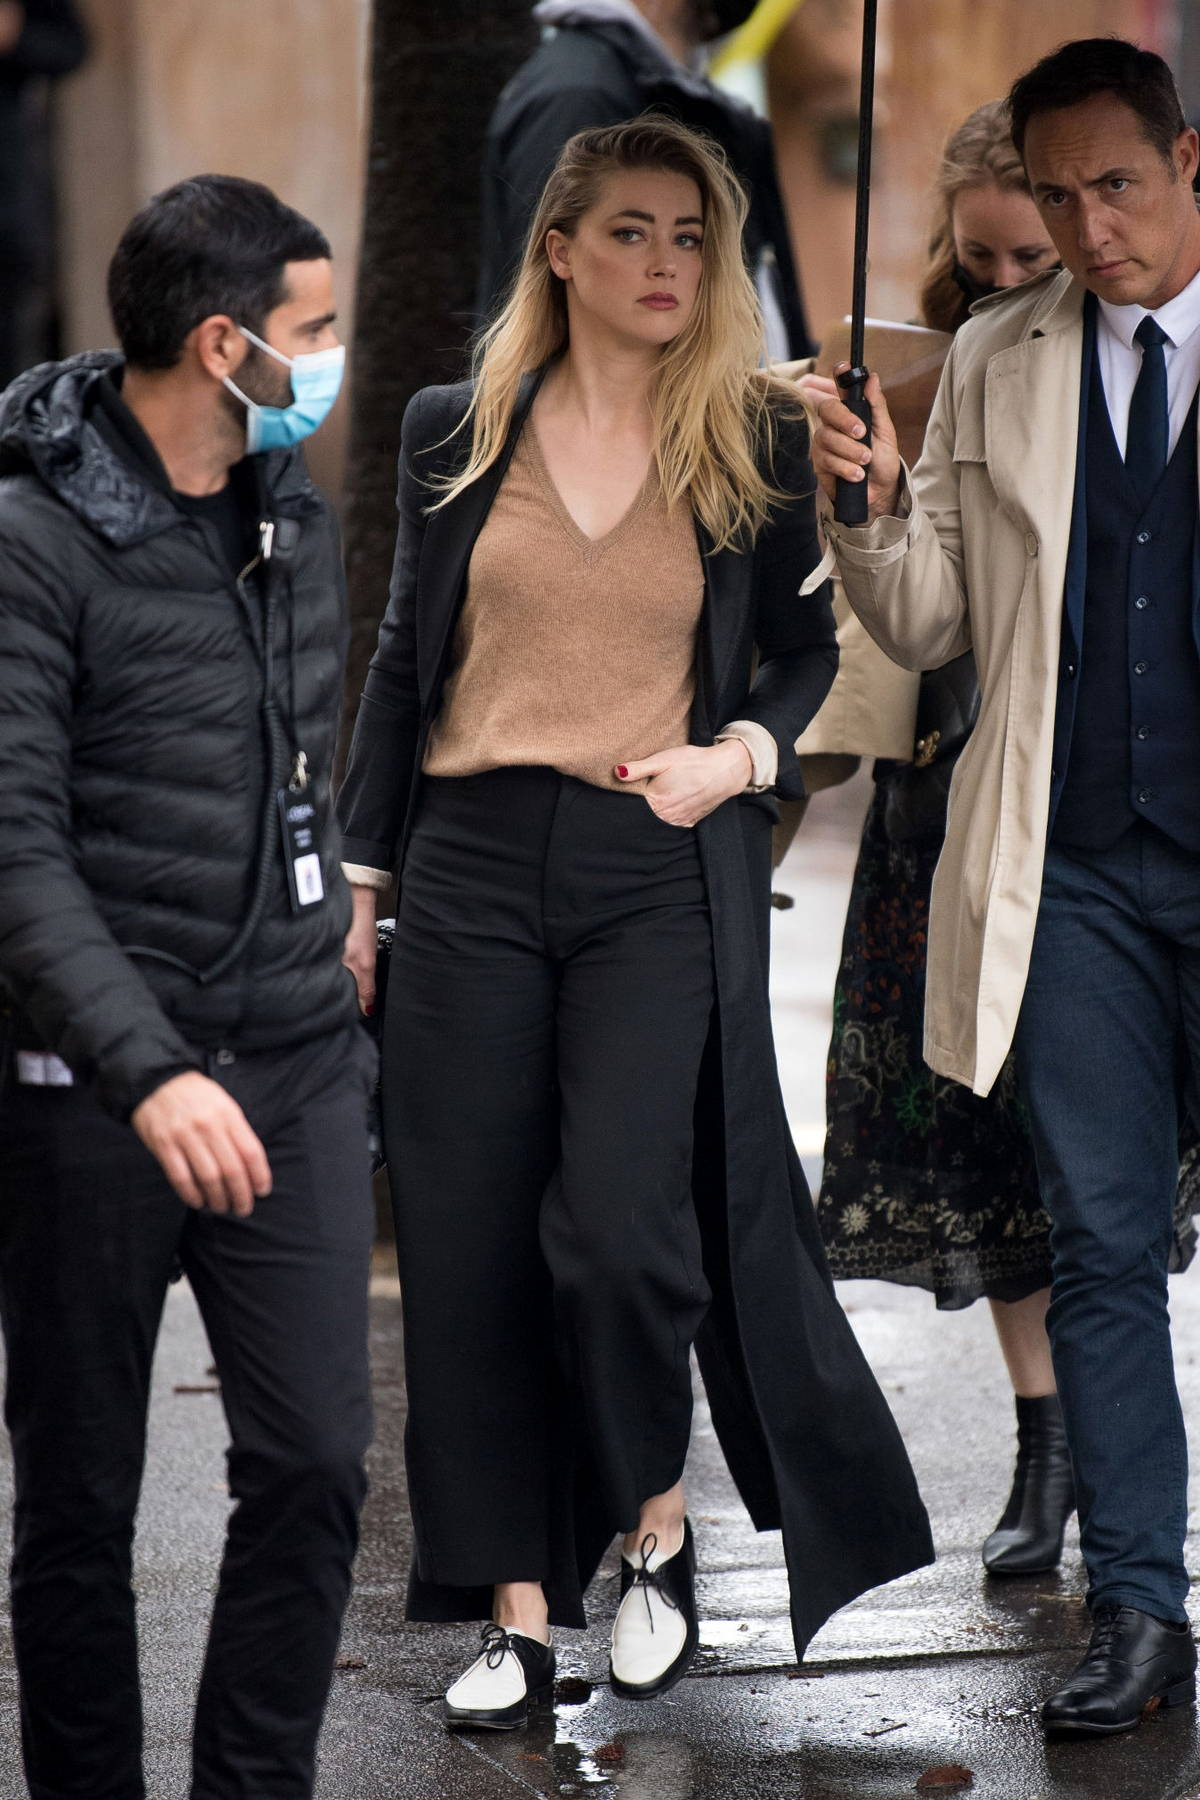 Amber Heard looks chic in a black trench coat with matching trousers and a beige sweater while out in Paris, France